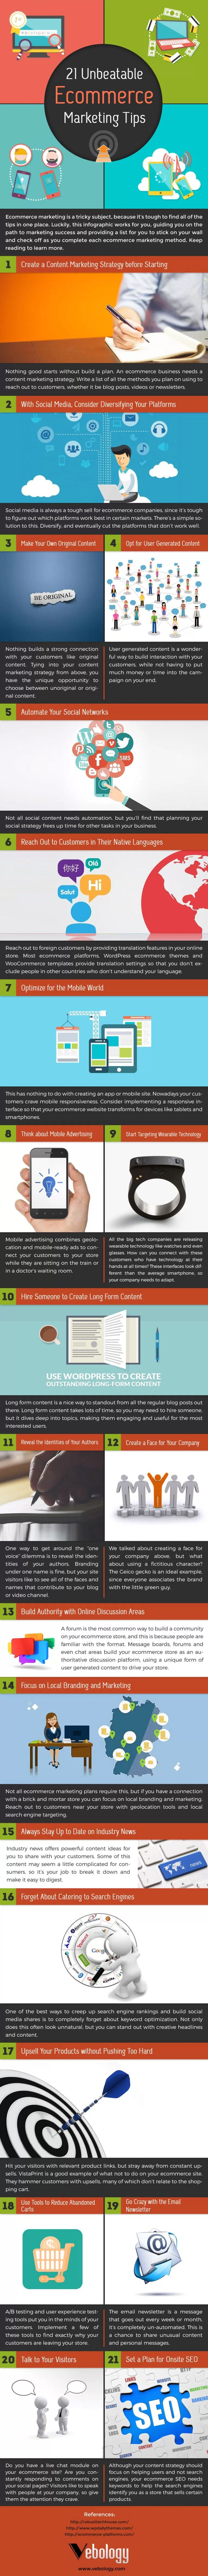 21 Unbeatable #Ecommerce #Marketing Tips to Generate More Online Sales #Infographic